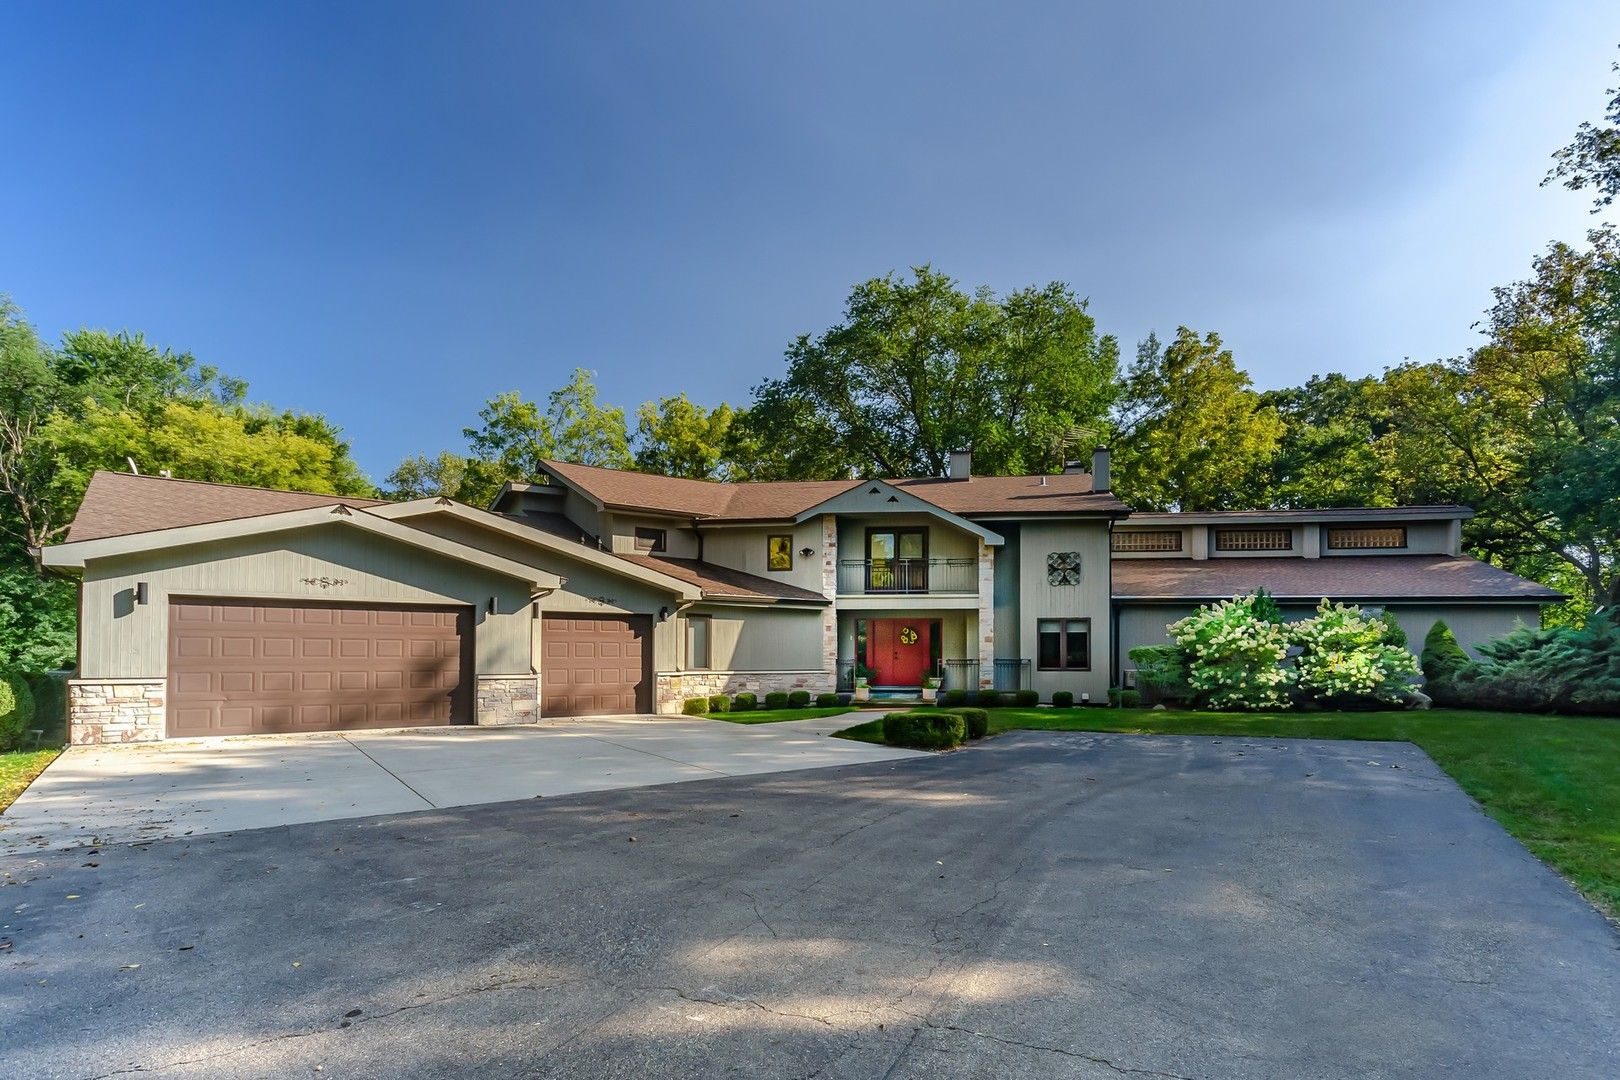 955 Gage, Lake Forest, Illinois, 60045